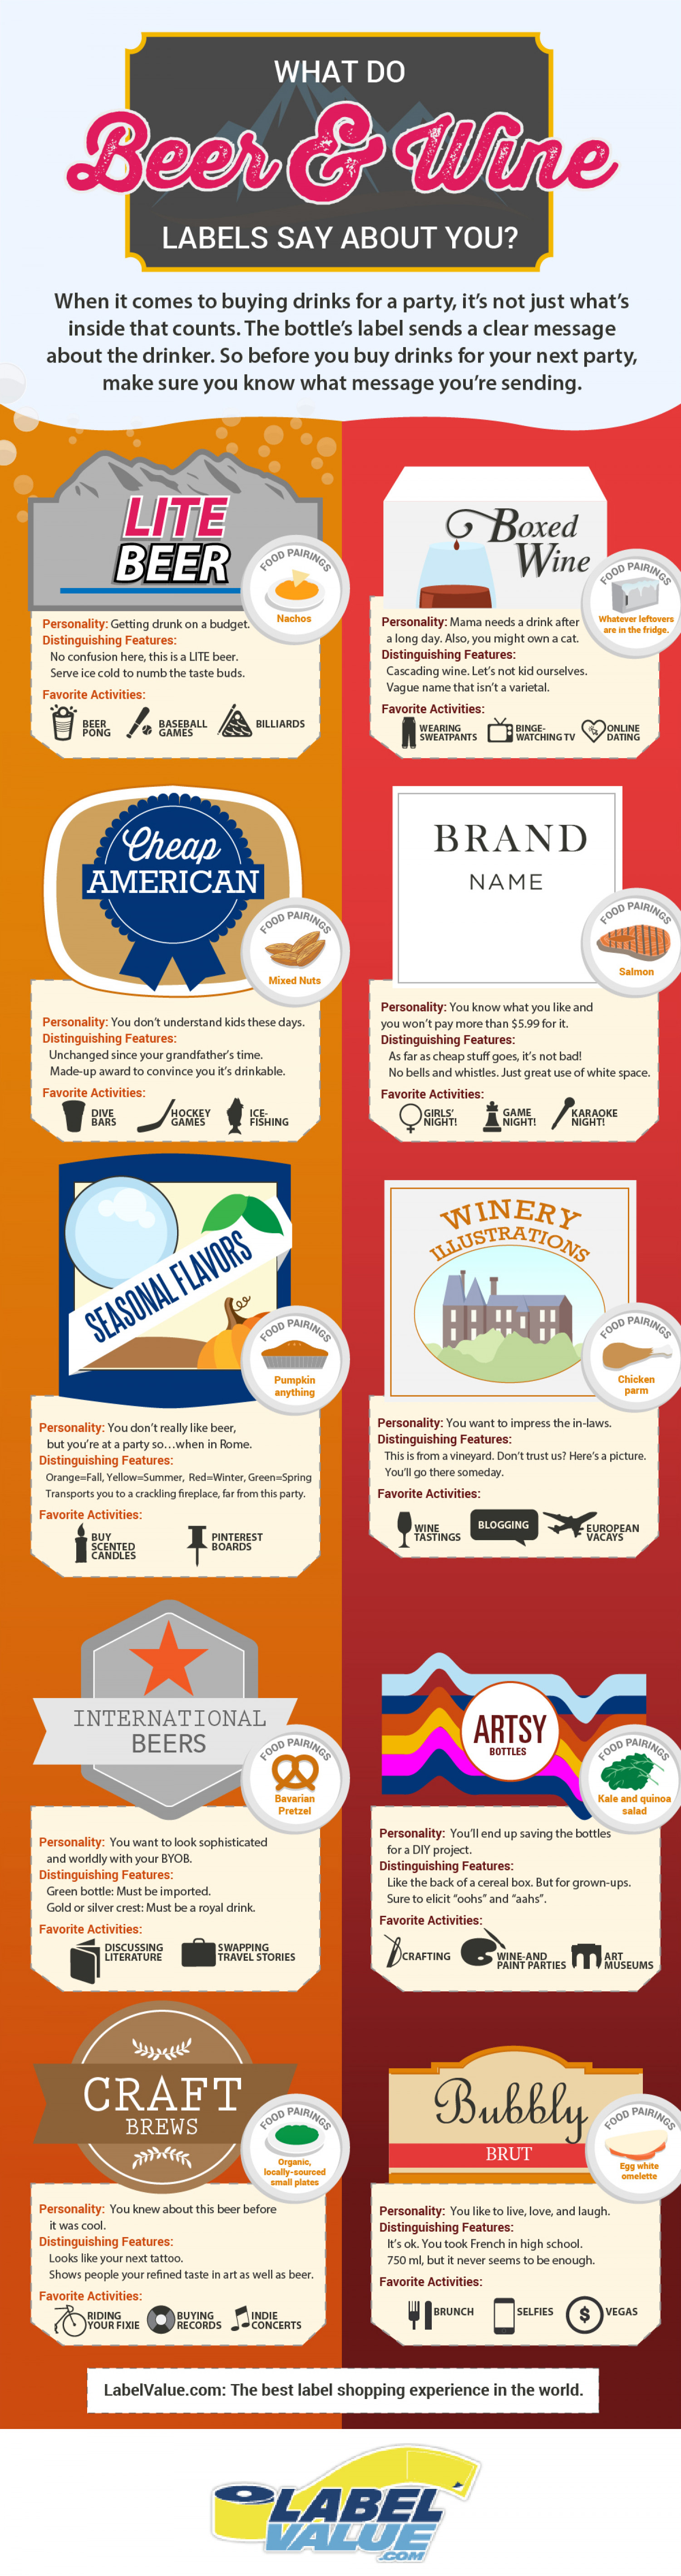 What Do Beer and Wine Labels Say About You?  Infographic